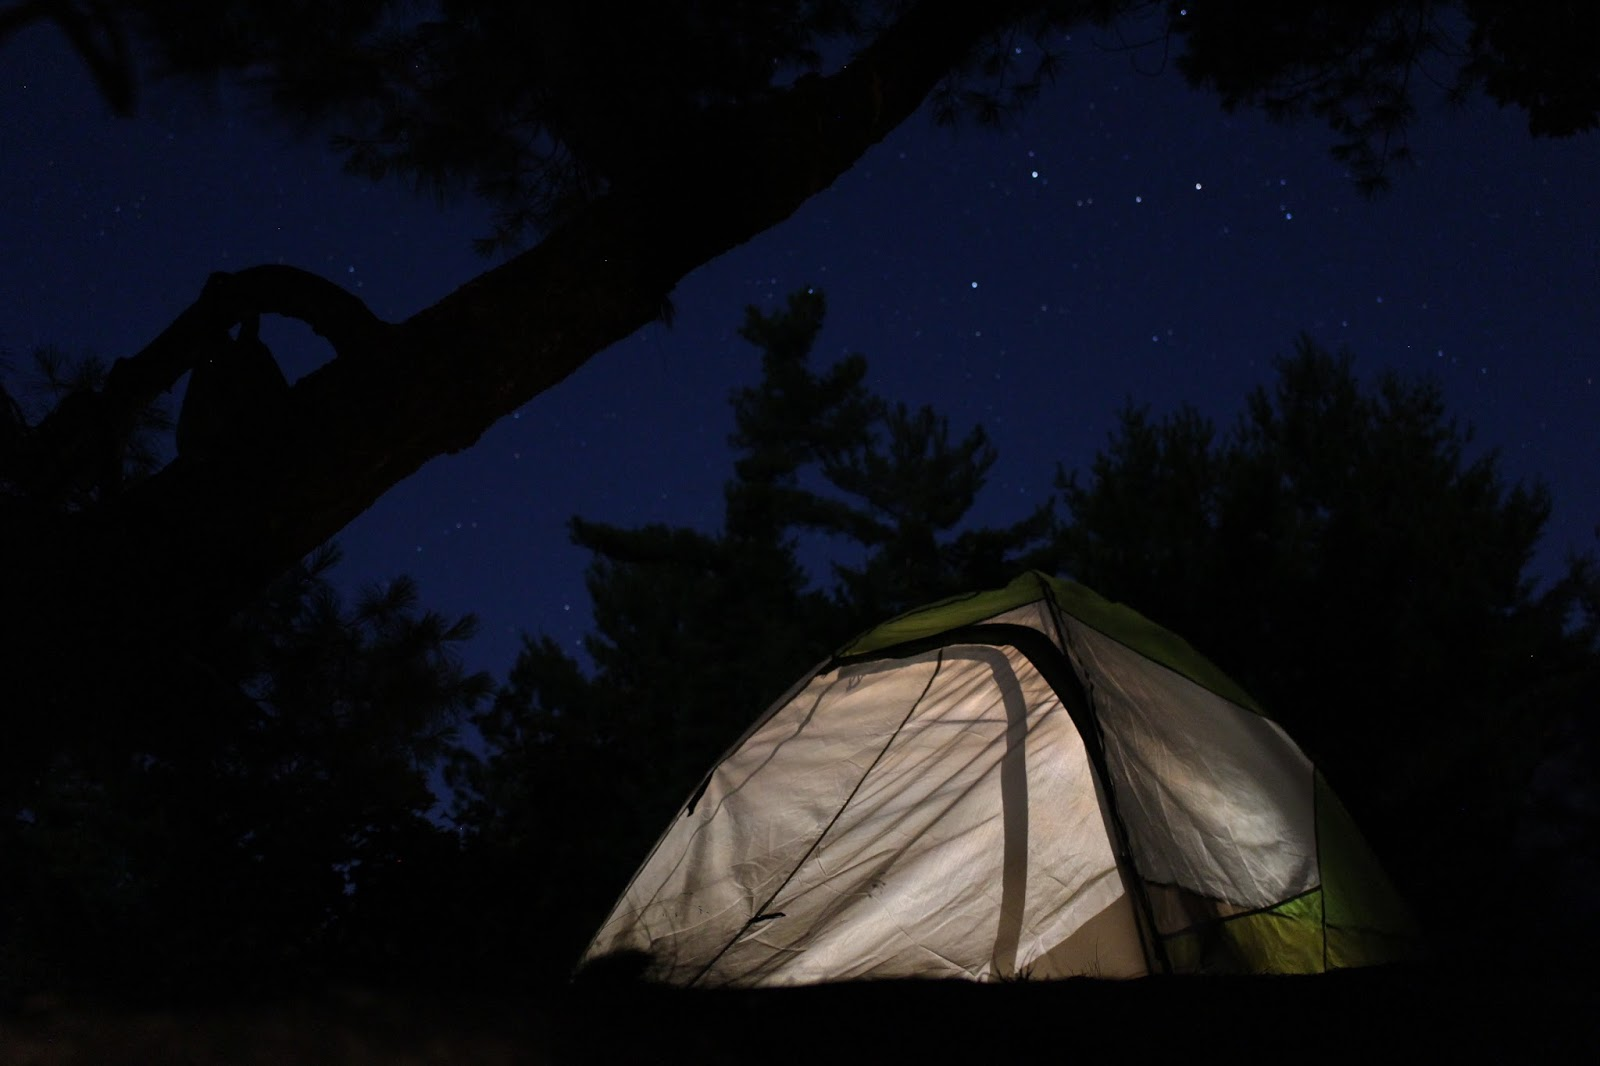 Edu0027s Kelty Grand Mesa 2 tent set up with a starlight sky background & August 2015 ~ Real Man Travels